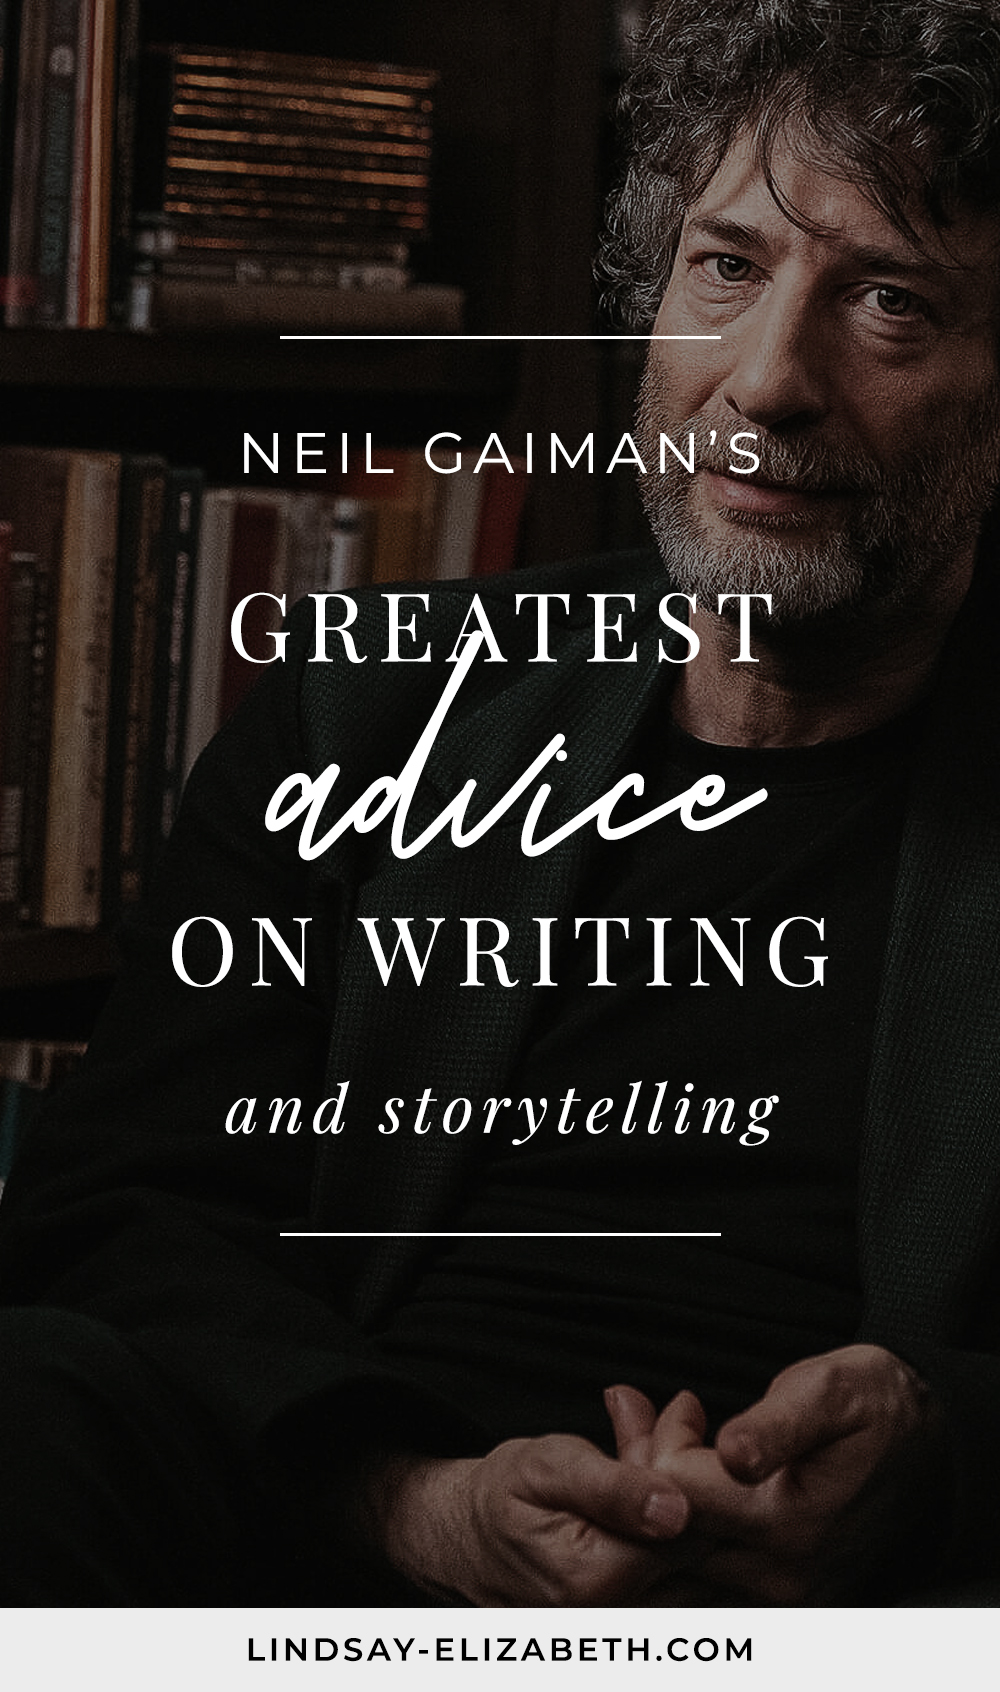 Iconic fantasy author Neil Gaiman shares his best tips on writing and storytelling, covering everything from character development and dialogue to world-building and writer's block. A must-see for any writer, beginner or advanced.